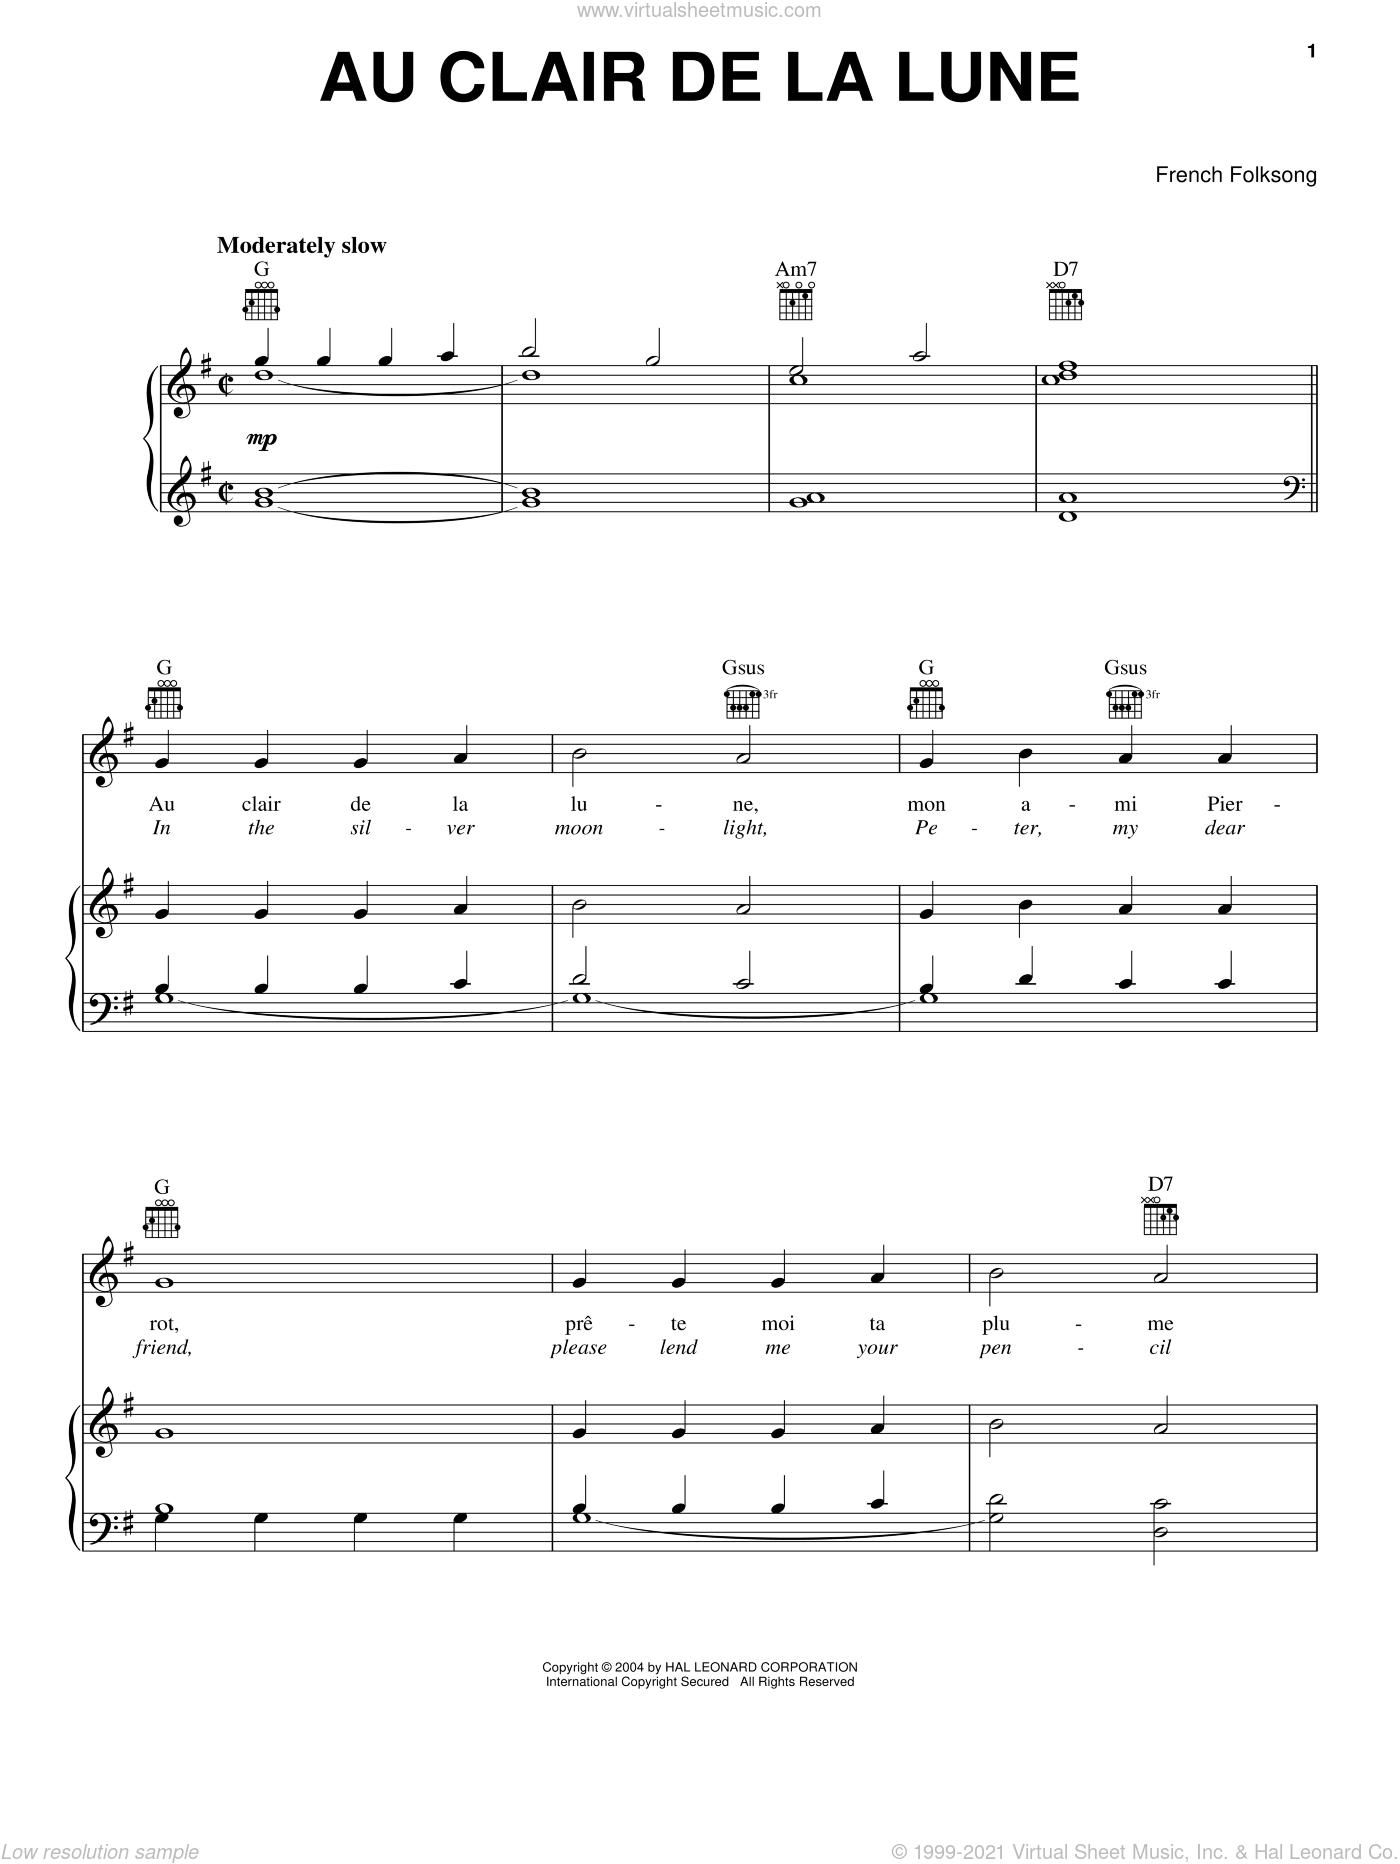 Au Clair De La Lune sheet music for voice, piano or guitar, intermediate skill level